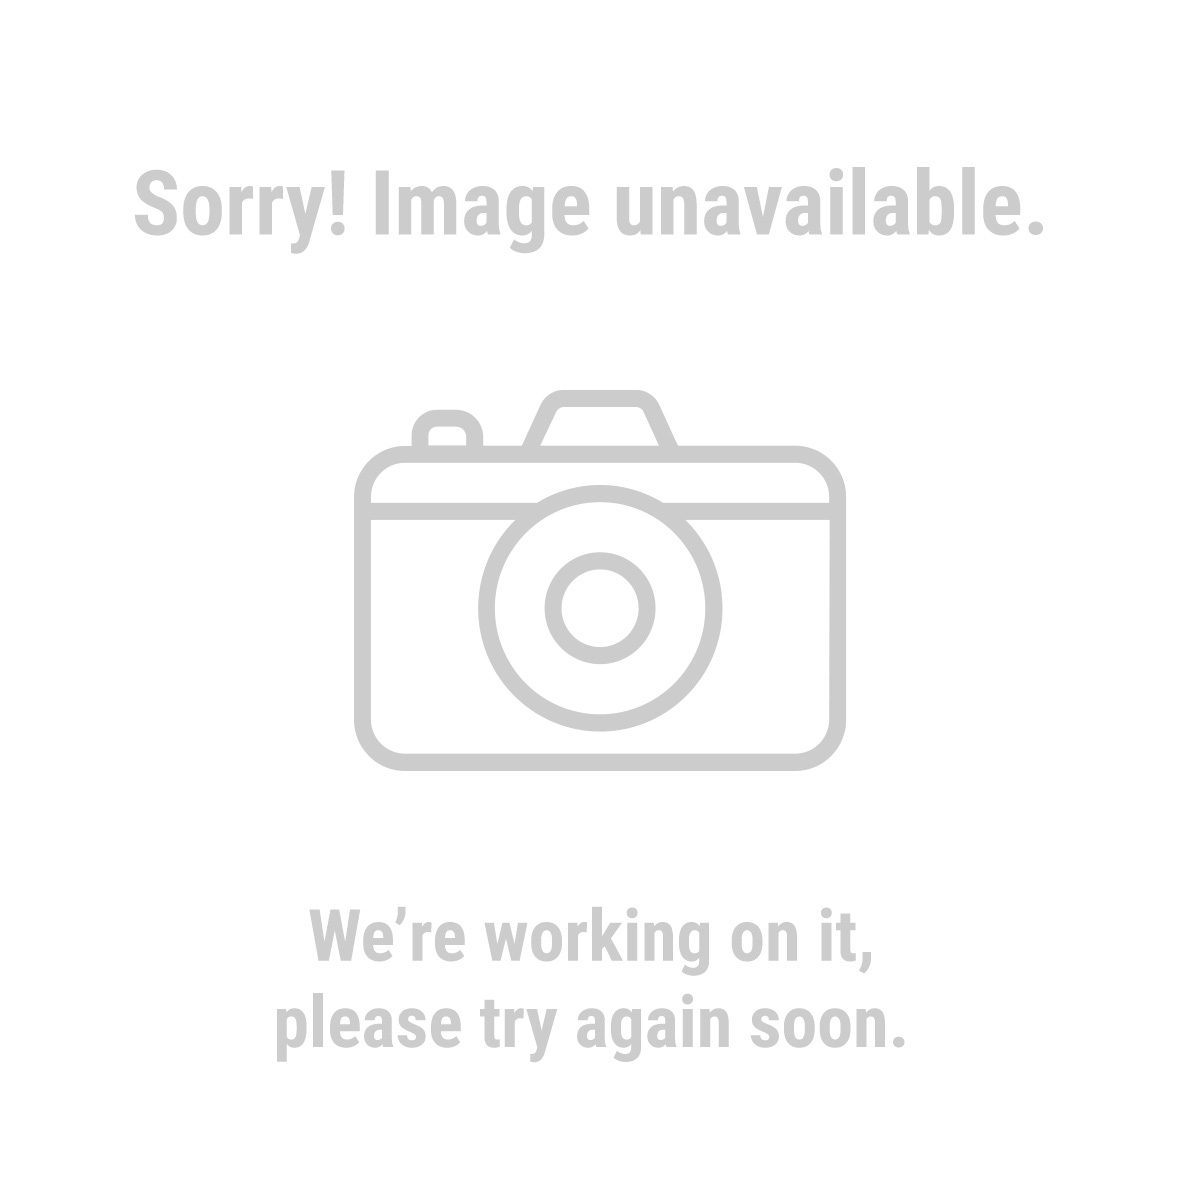 Western Safety 95639 PVC Dot Gloves, 3 Pair